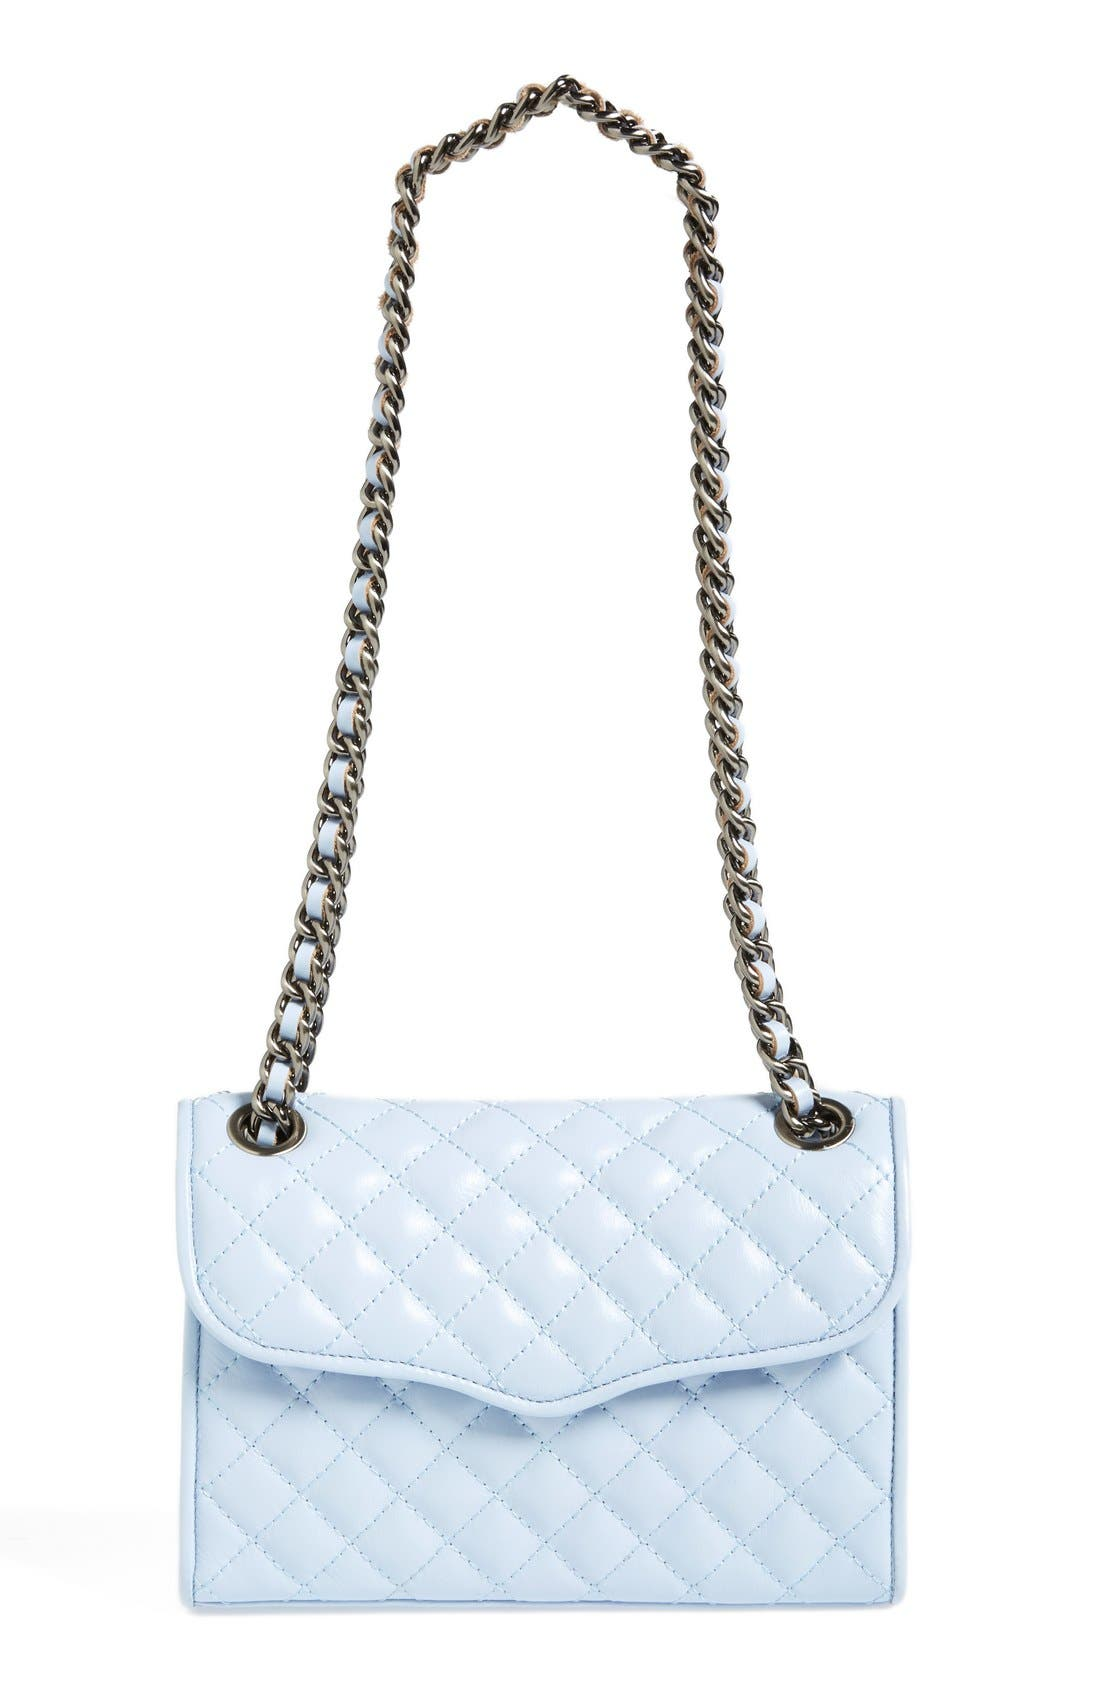 Main Image - Rebecca Minkoff 'Quilted Mini Affair' Crossbody Bag